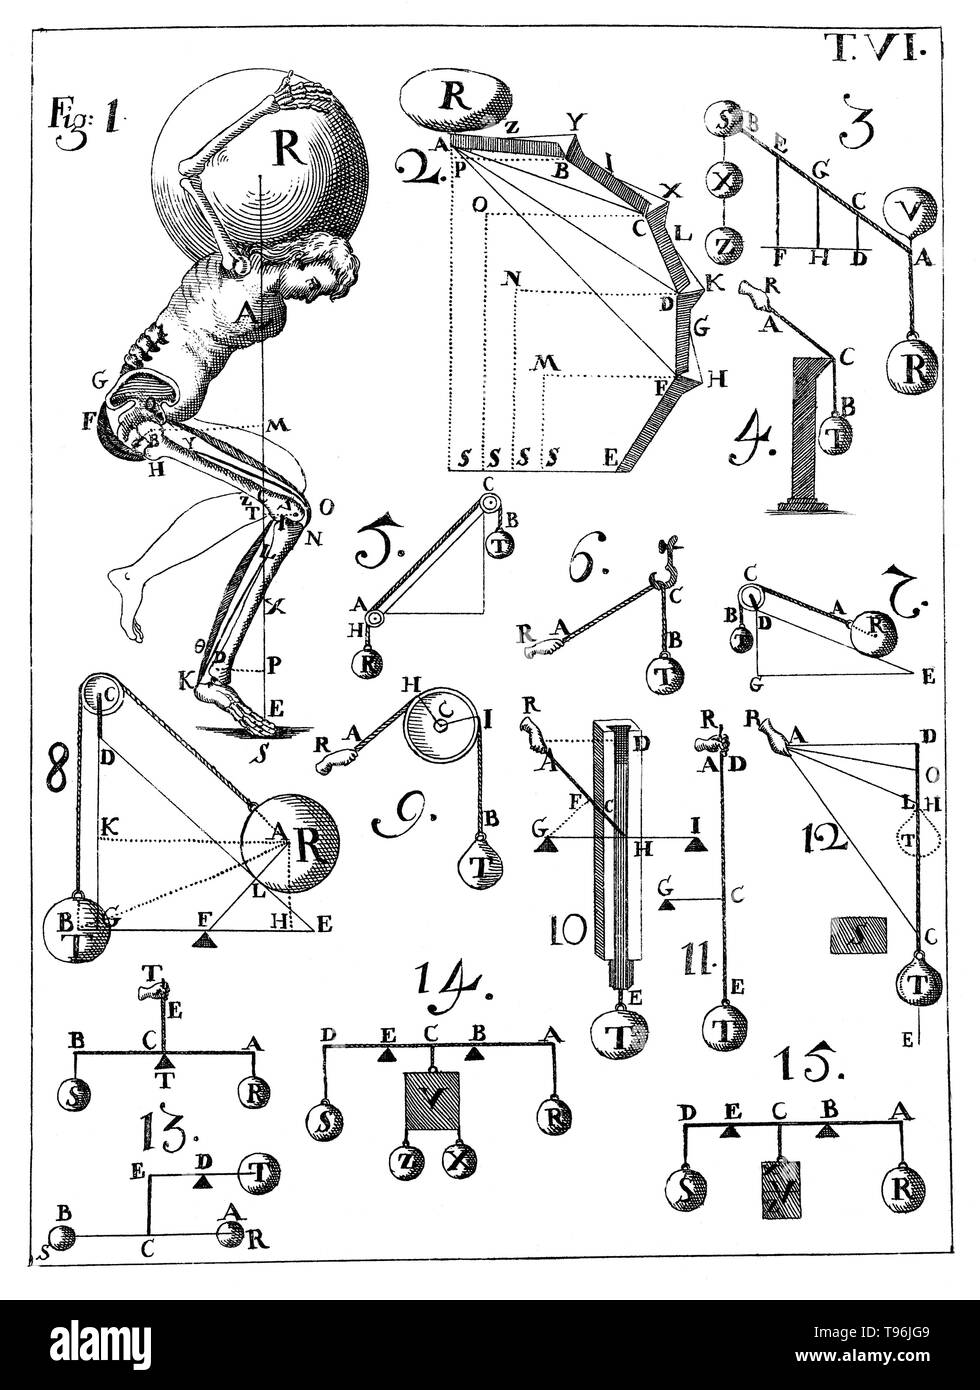 De motu animalium, 1734 edition. Table VI. Giovanni Alfonso Borelli (January 28, 1608 - December 31, 1679) was a Renaissance Italian physiologist, physicist, and mathematician. He contributed to the modern principle of scientific investigation by continuing Galileo's custom of testing hypotheses against observation. Trained in mathematics, Borelli also made extensive studies of Jupiter's moons, the mechanics of animal locomotion and, in microscopy, of the constituents of blood. - Stock Image